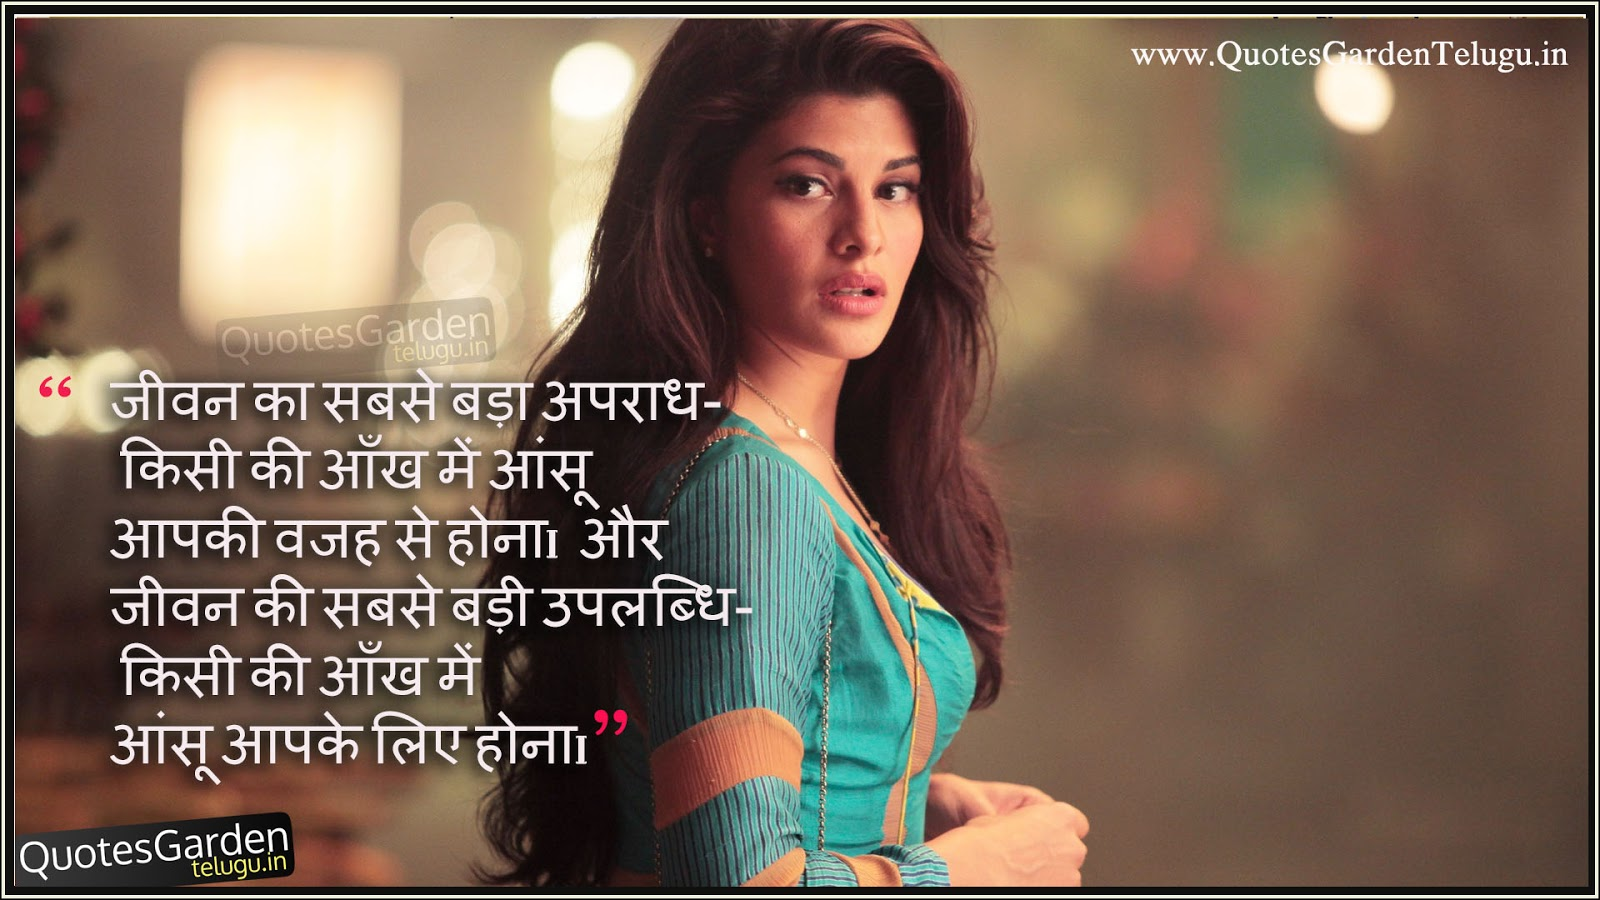 Heart Touching Love Quotes Thoughts Beautiful Sms Text Messages In